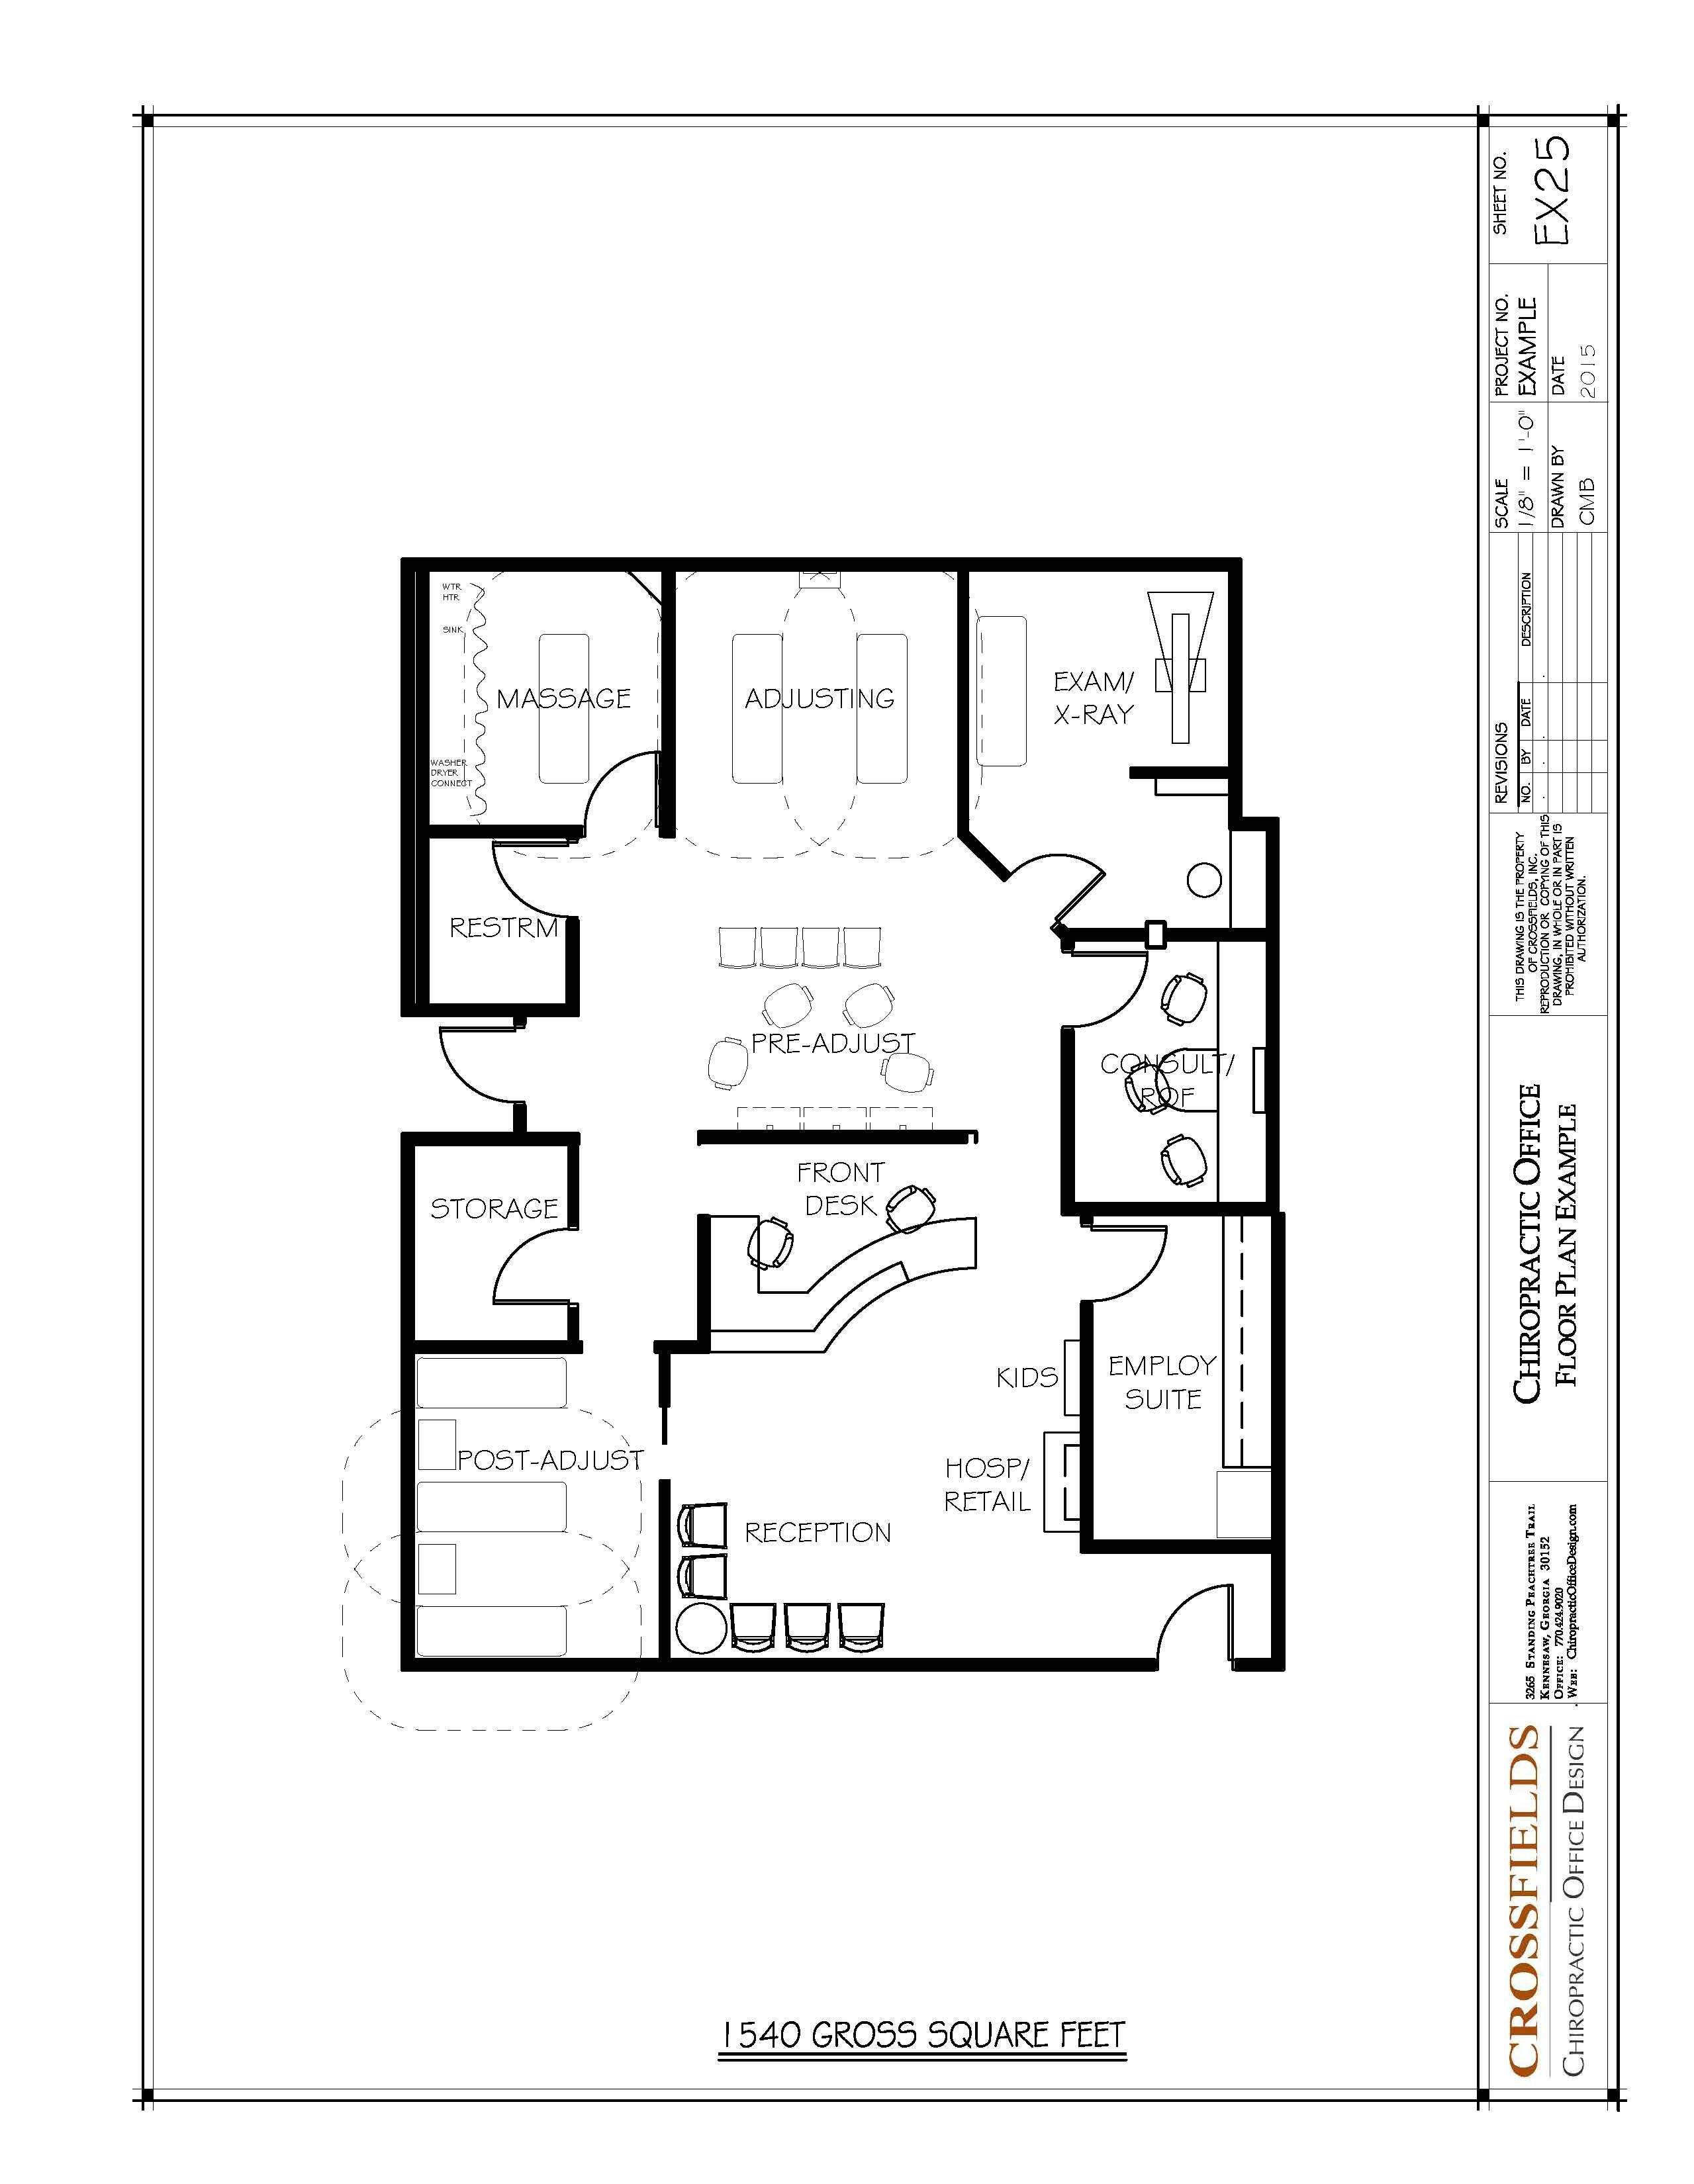 Office Plans Chiropractic Office Floor Plans Versatile Medical Office Layouts